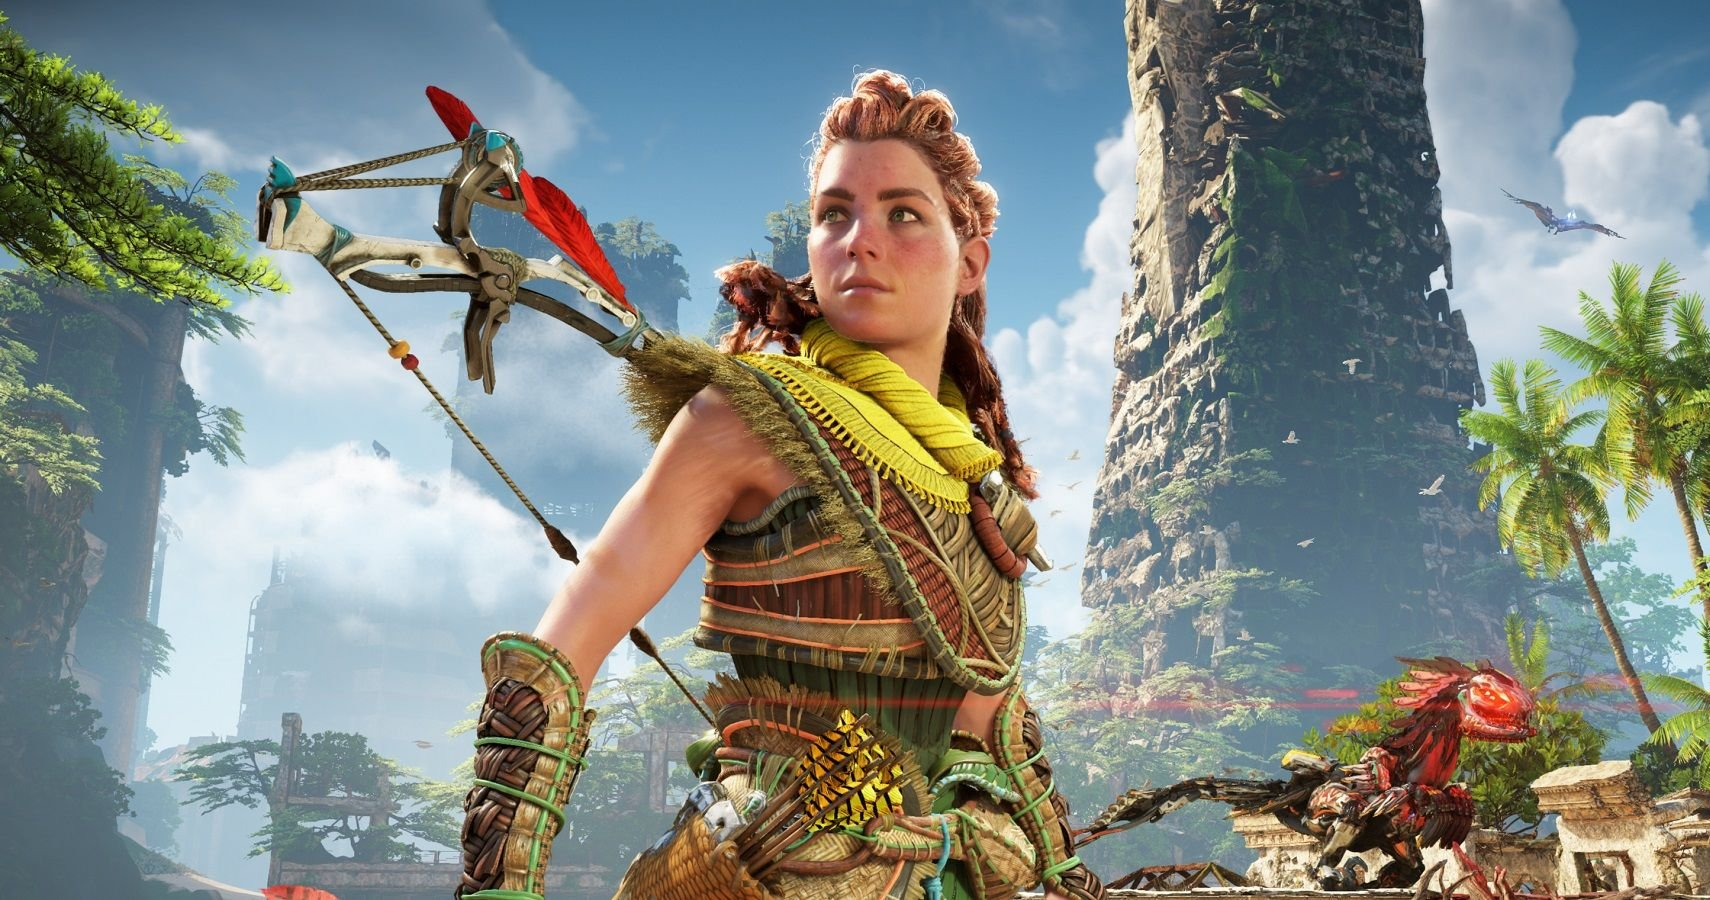 The Complaints About Aloy's Look Highlight The Hypocrisy Around Realism